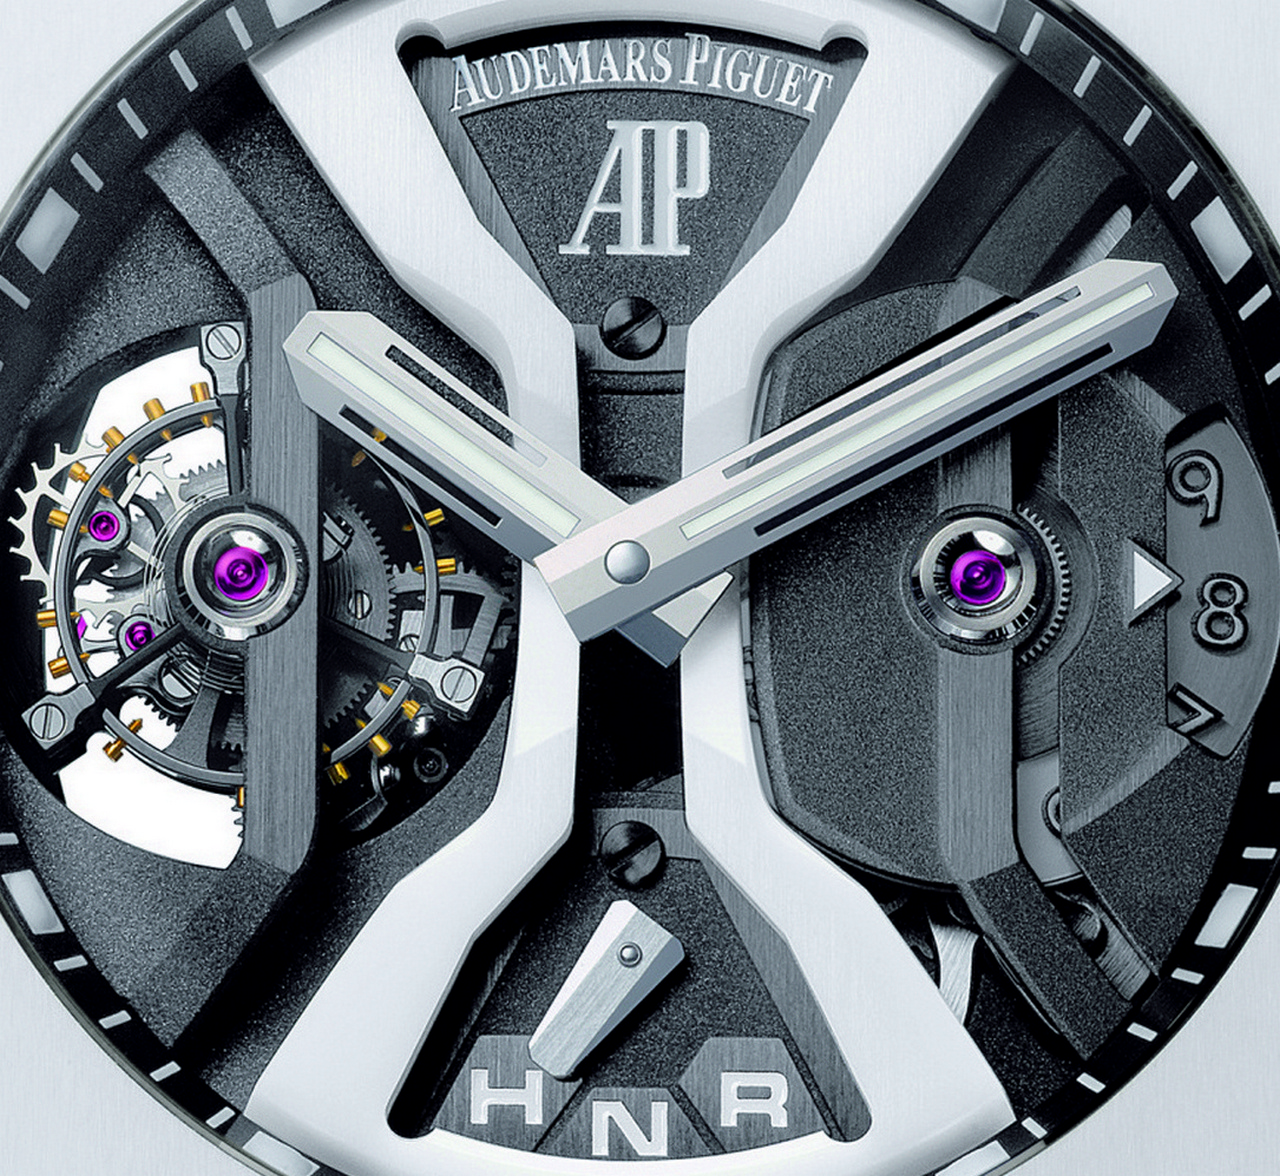 anteprima-sihh-2014-audemars-piguet-royal-oak-concept-gmt-tourbillon-0-100_4